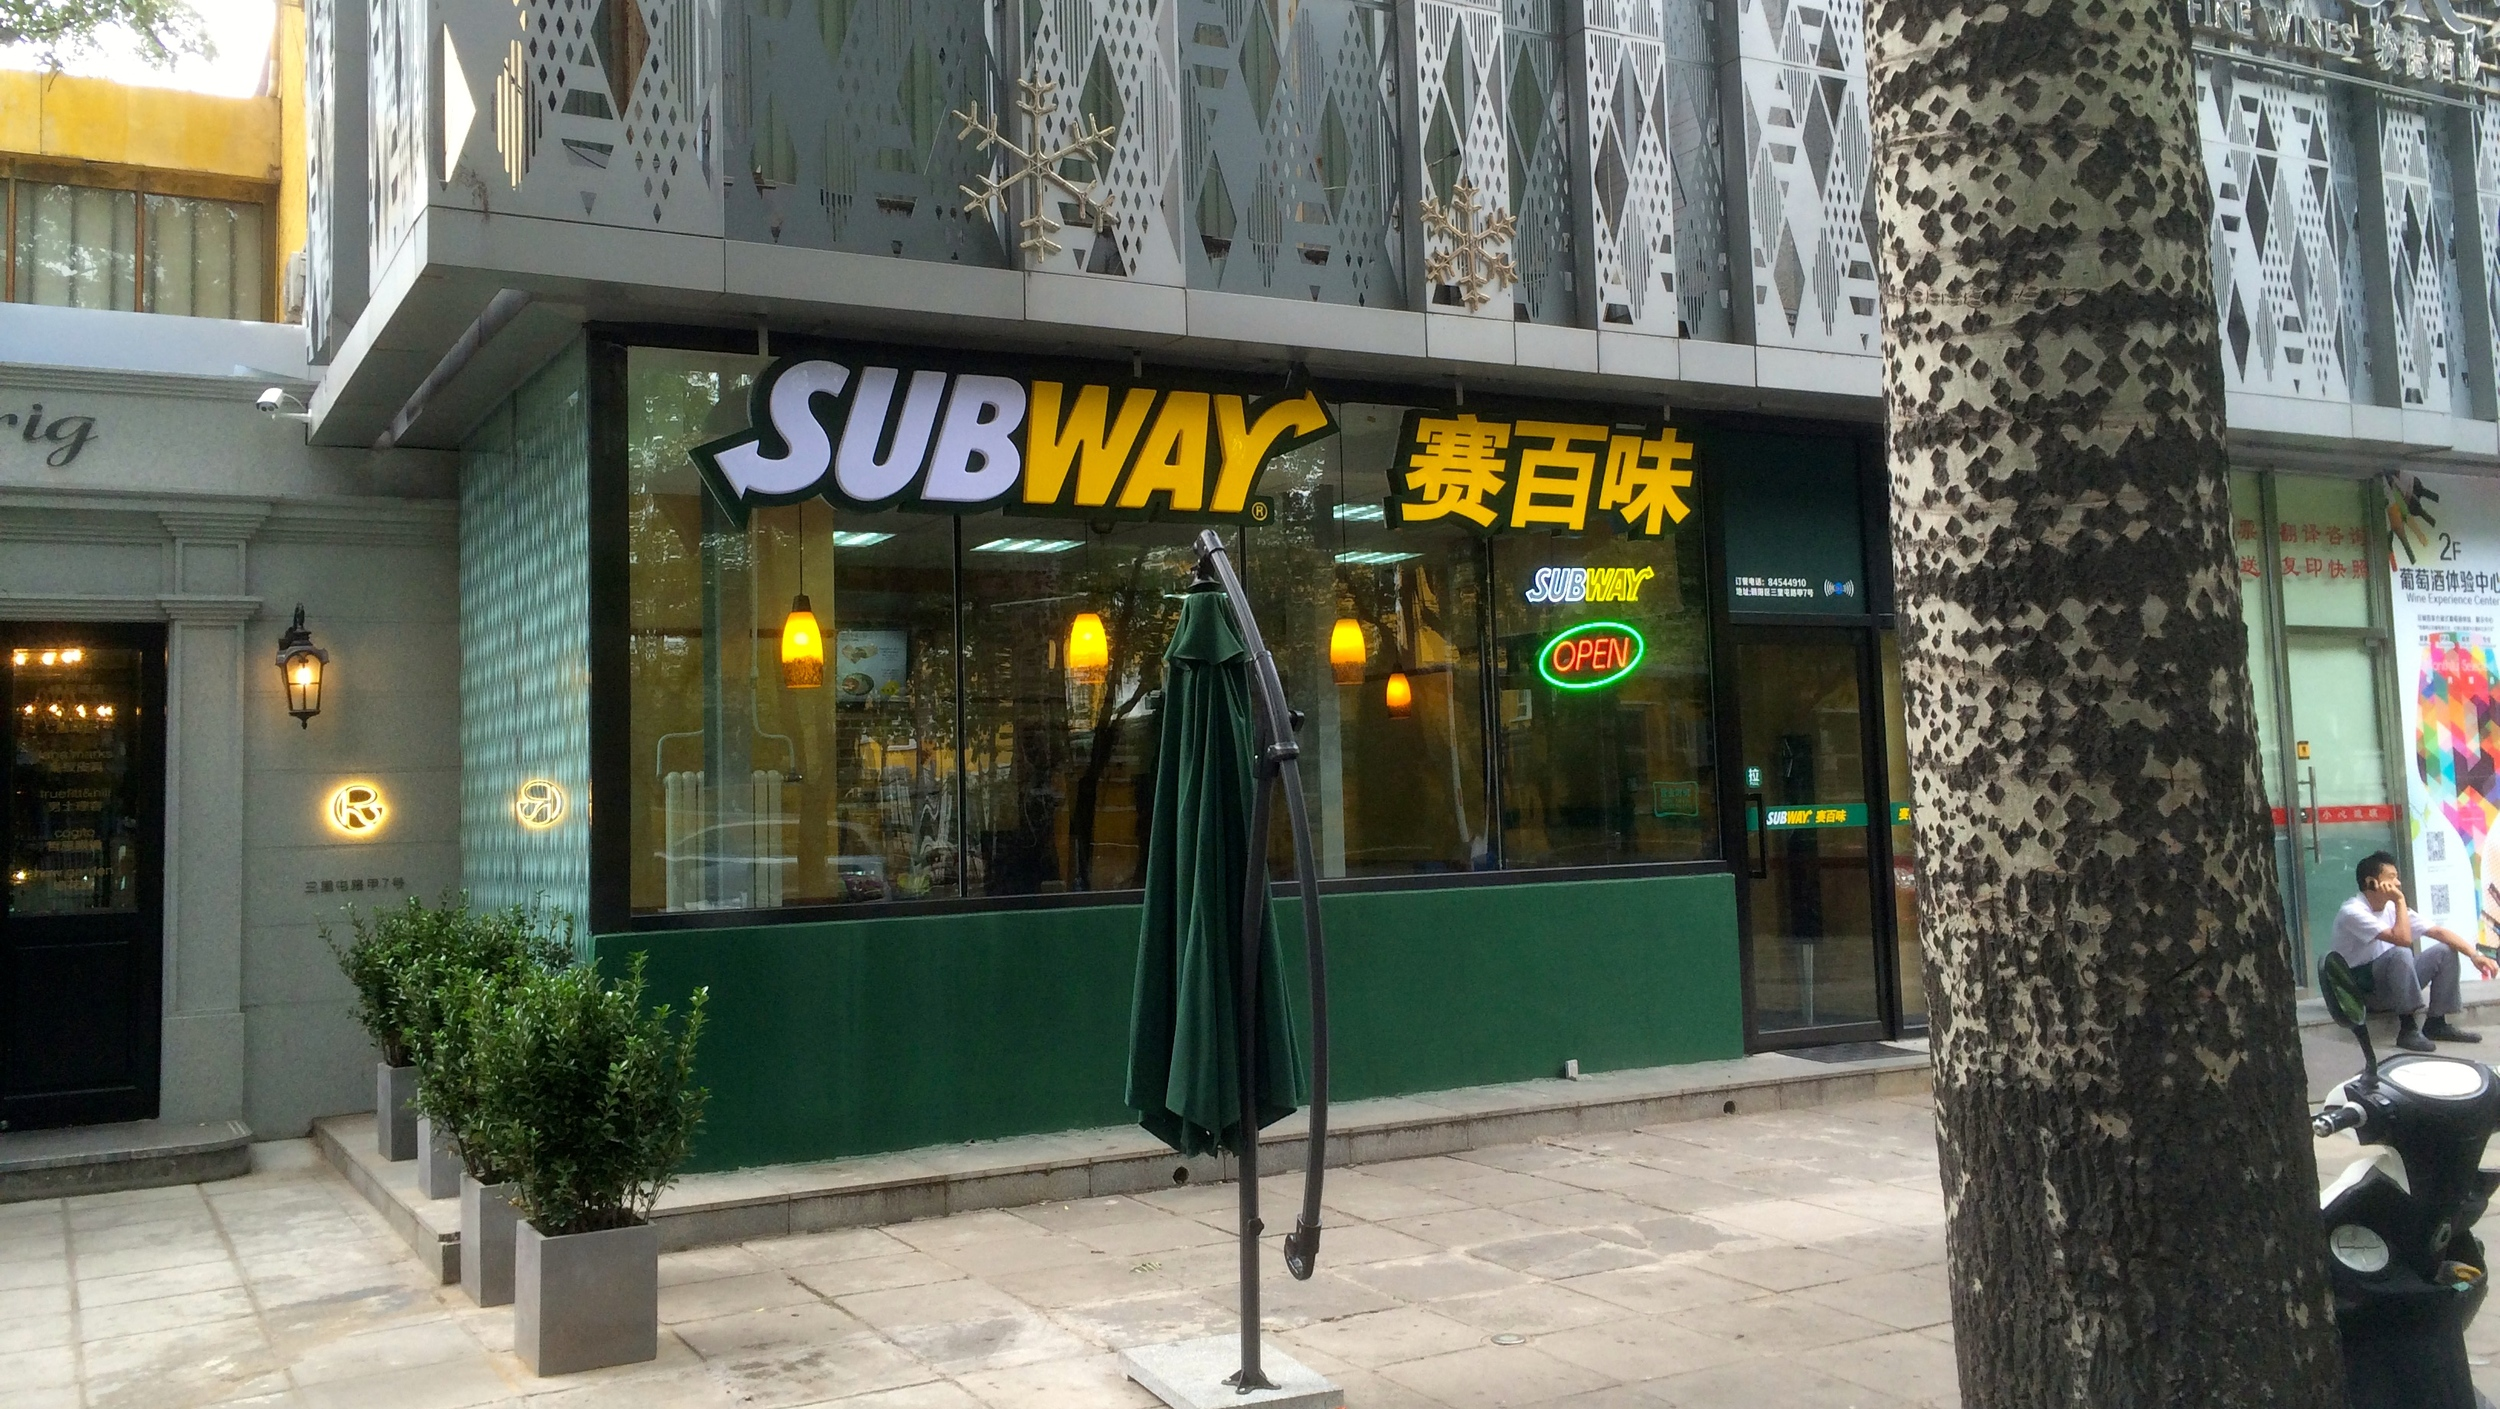 despite any stinky street smells...you can always smell the bread cooking at Subway.